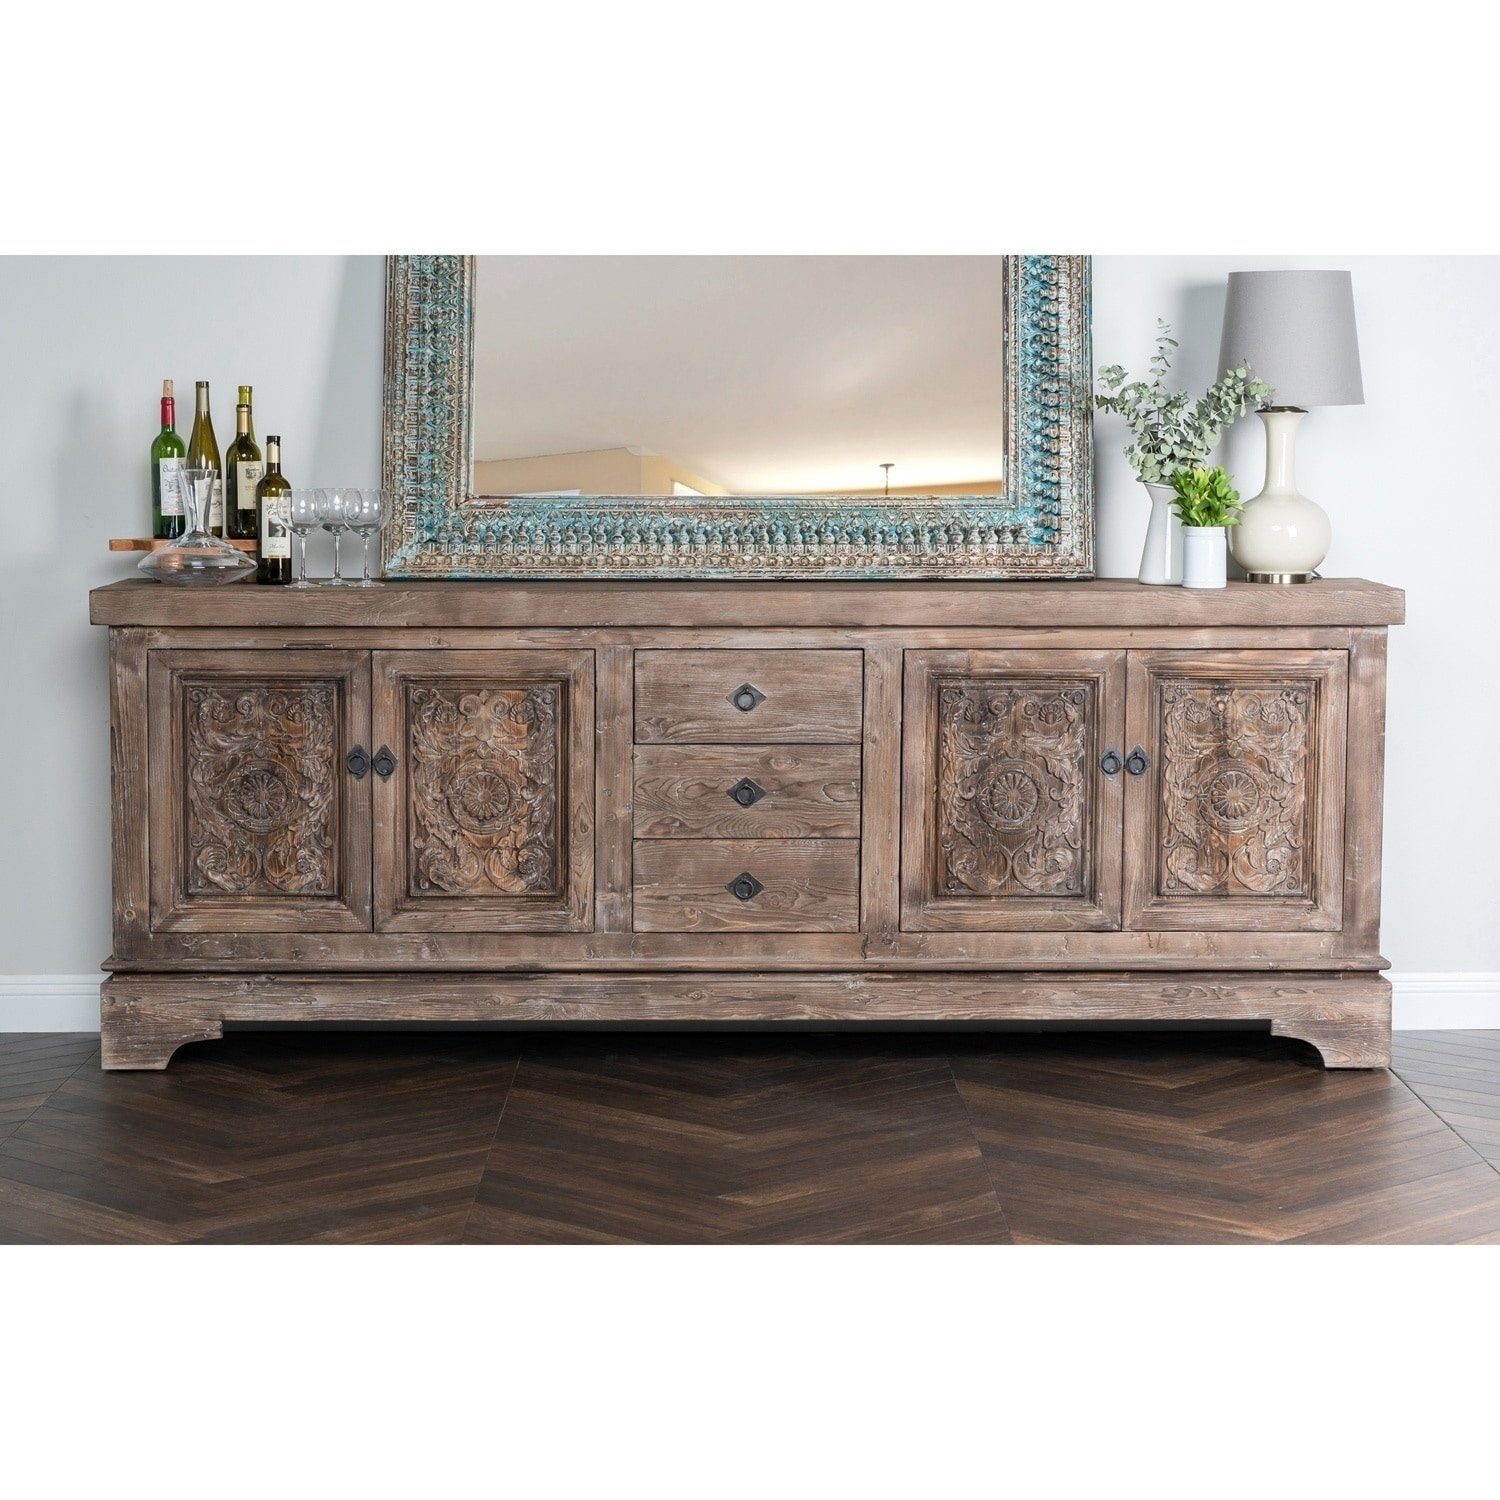 Shop Allen Rustic Taupe Reclaimed Pine 106-Inch Sideboardkosas within Iron Pine Sideboards (Image 22 of 30)